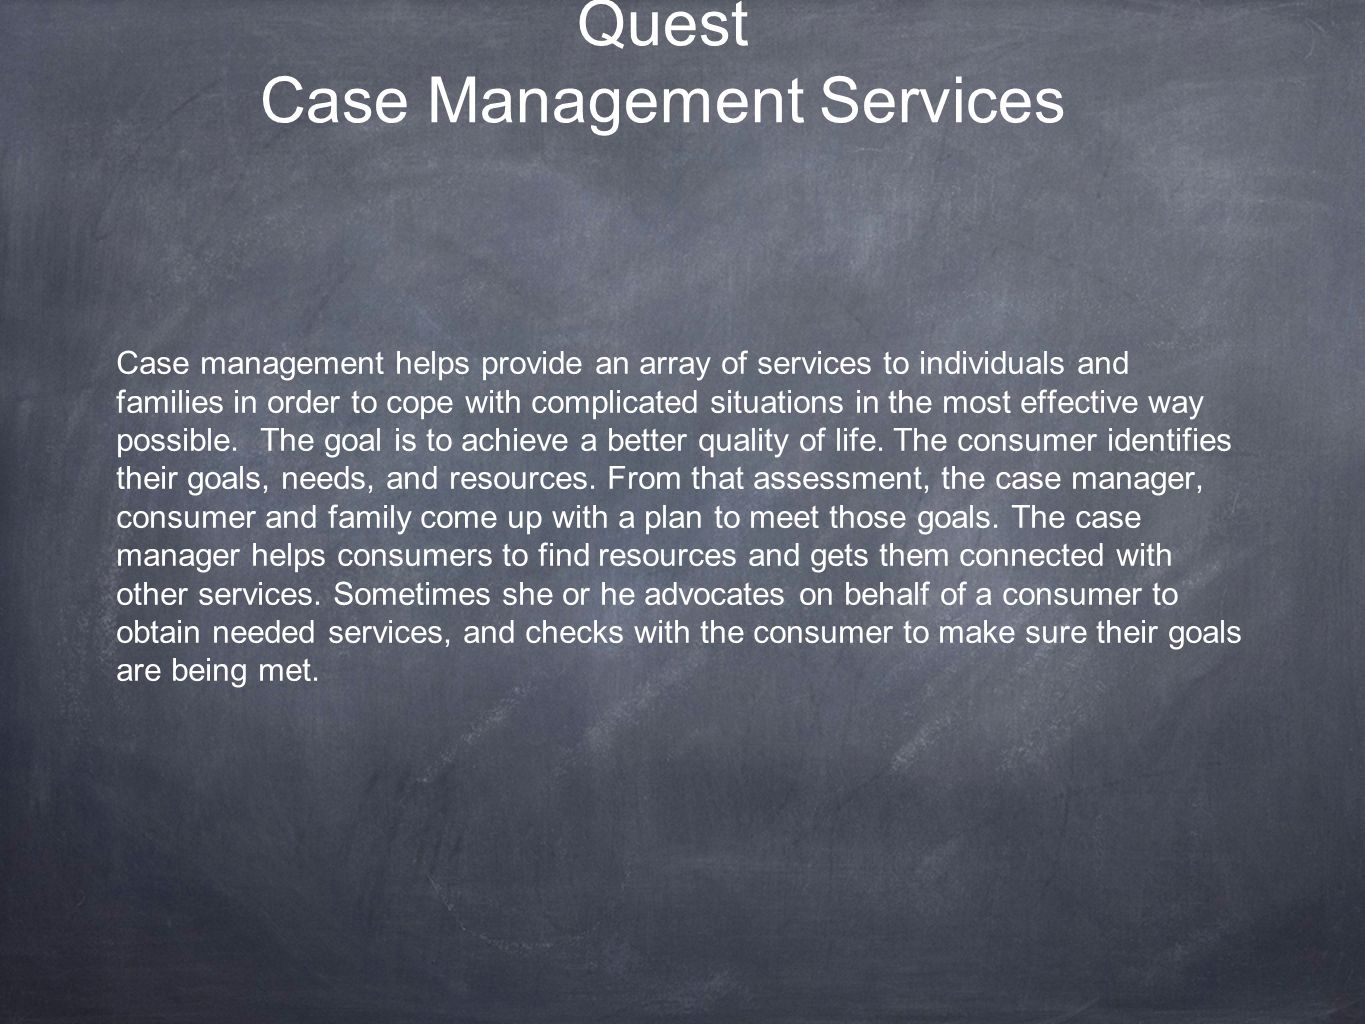 Quest Case Management Services Case management helps provide an array of services to individuals and families in order to cope with complicated situations in the most effective way possible.